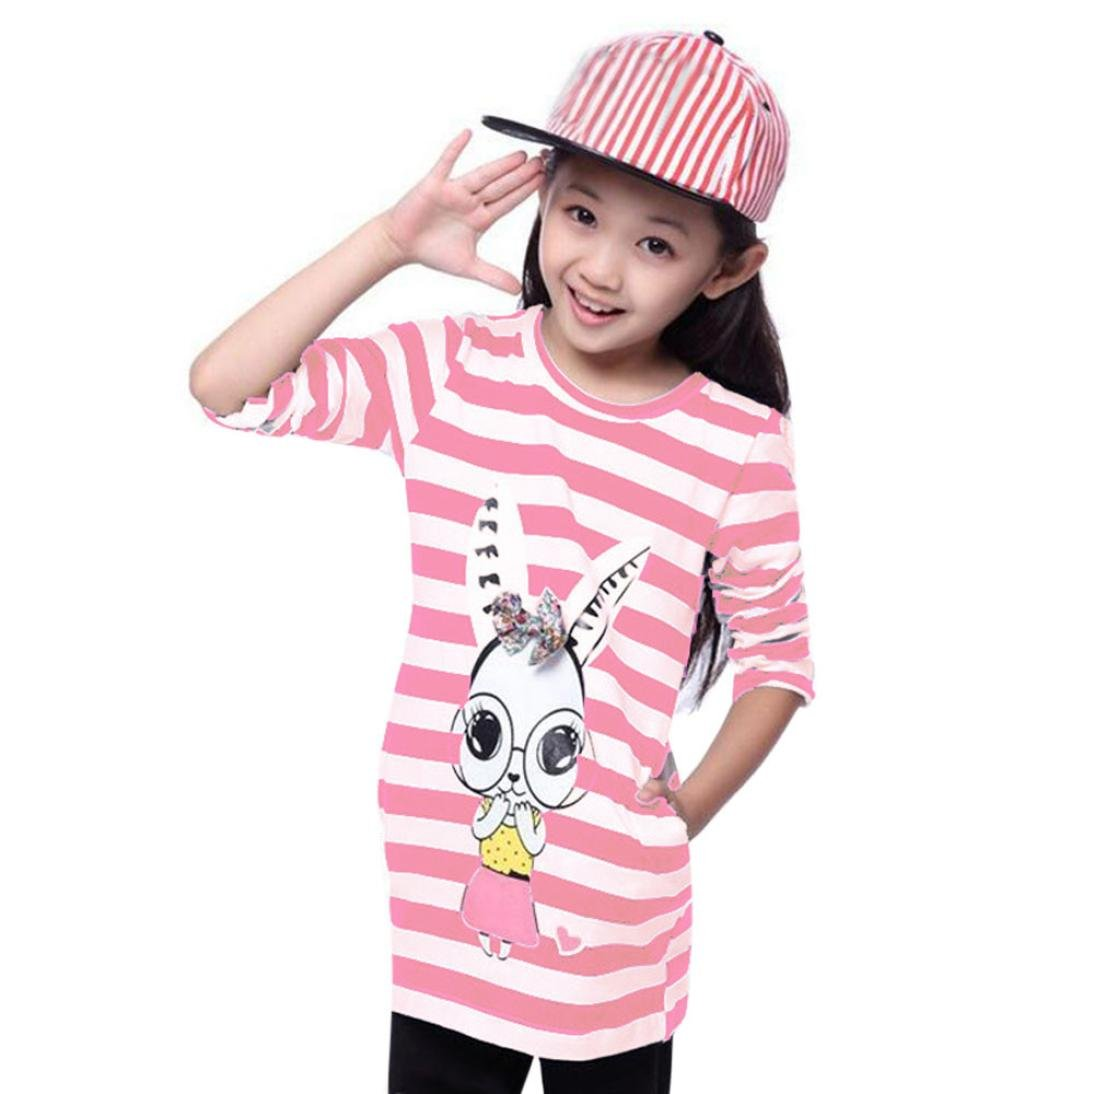 Sunward Little Girls Crewneck Cotton T-shirt Dresses Animal Applique Long Sleeve Dress (5-6T, Pink)